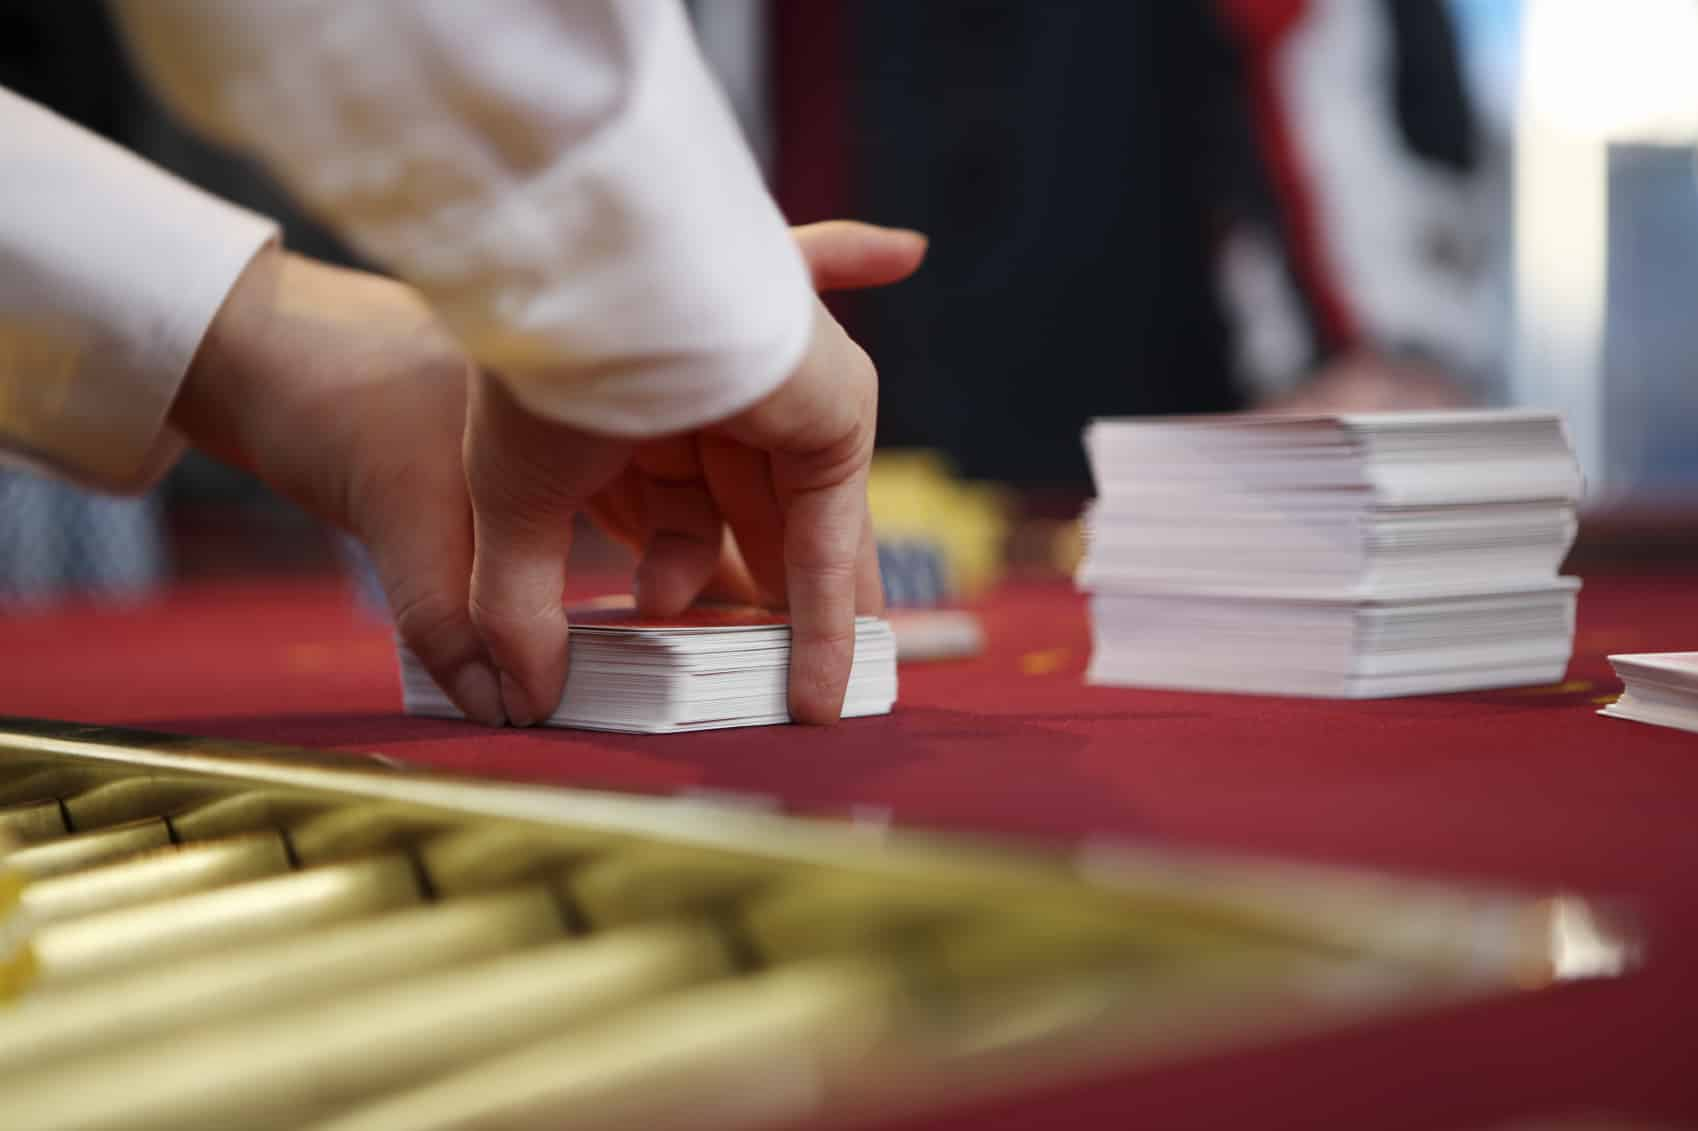 Shuffling cards, animated picture. Dealers' hands move fast, shuffle tracking is not an easy money scheme.